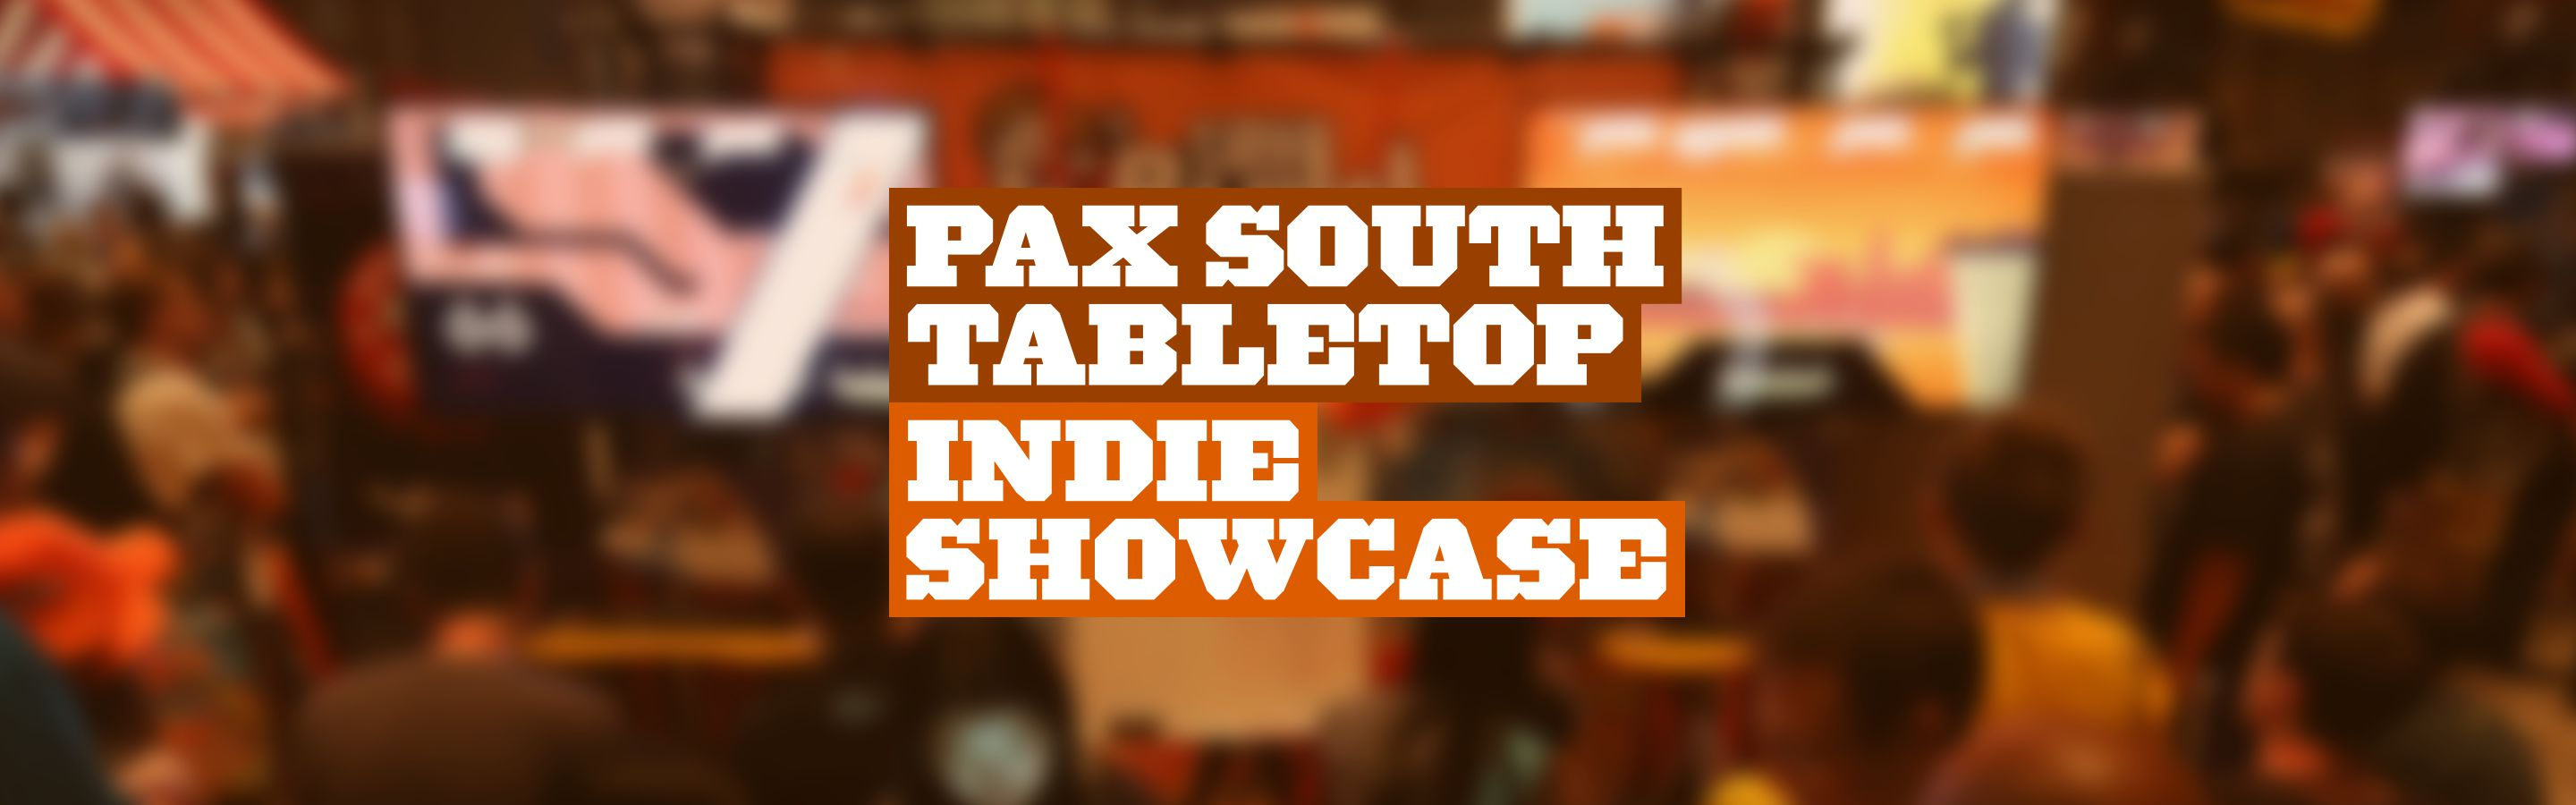 PAX South Tabletop Indie Showcase, 2019 Game Submission